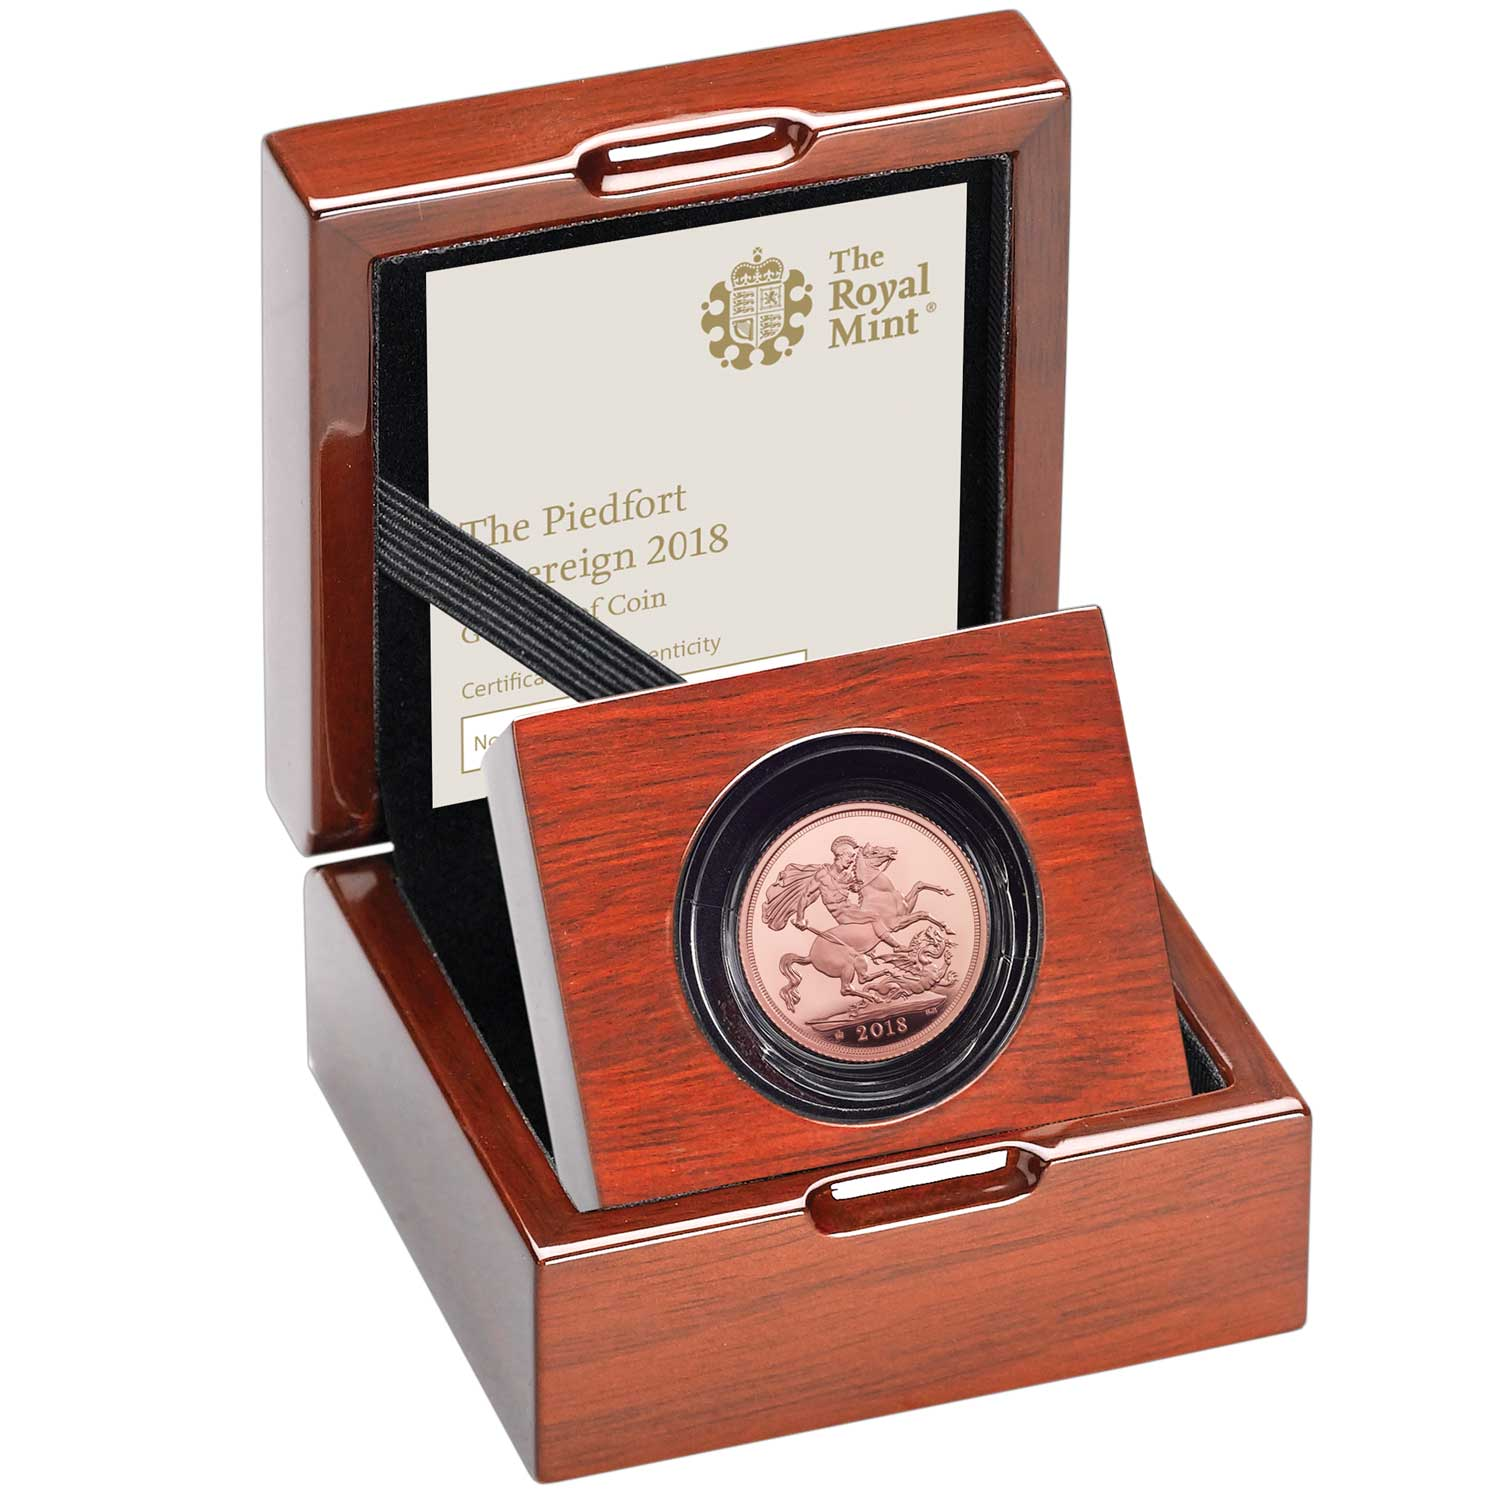 The Piedfort Sovereign 2018 Gold Proof Coin